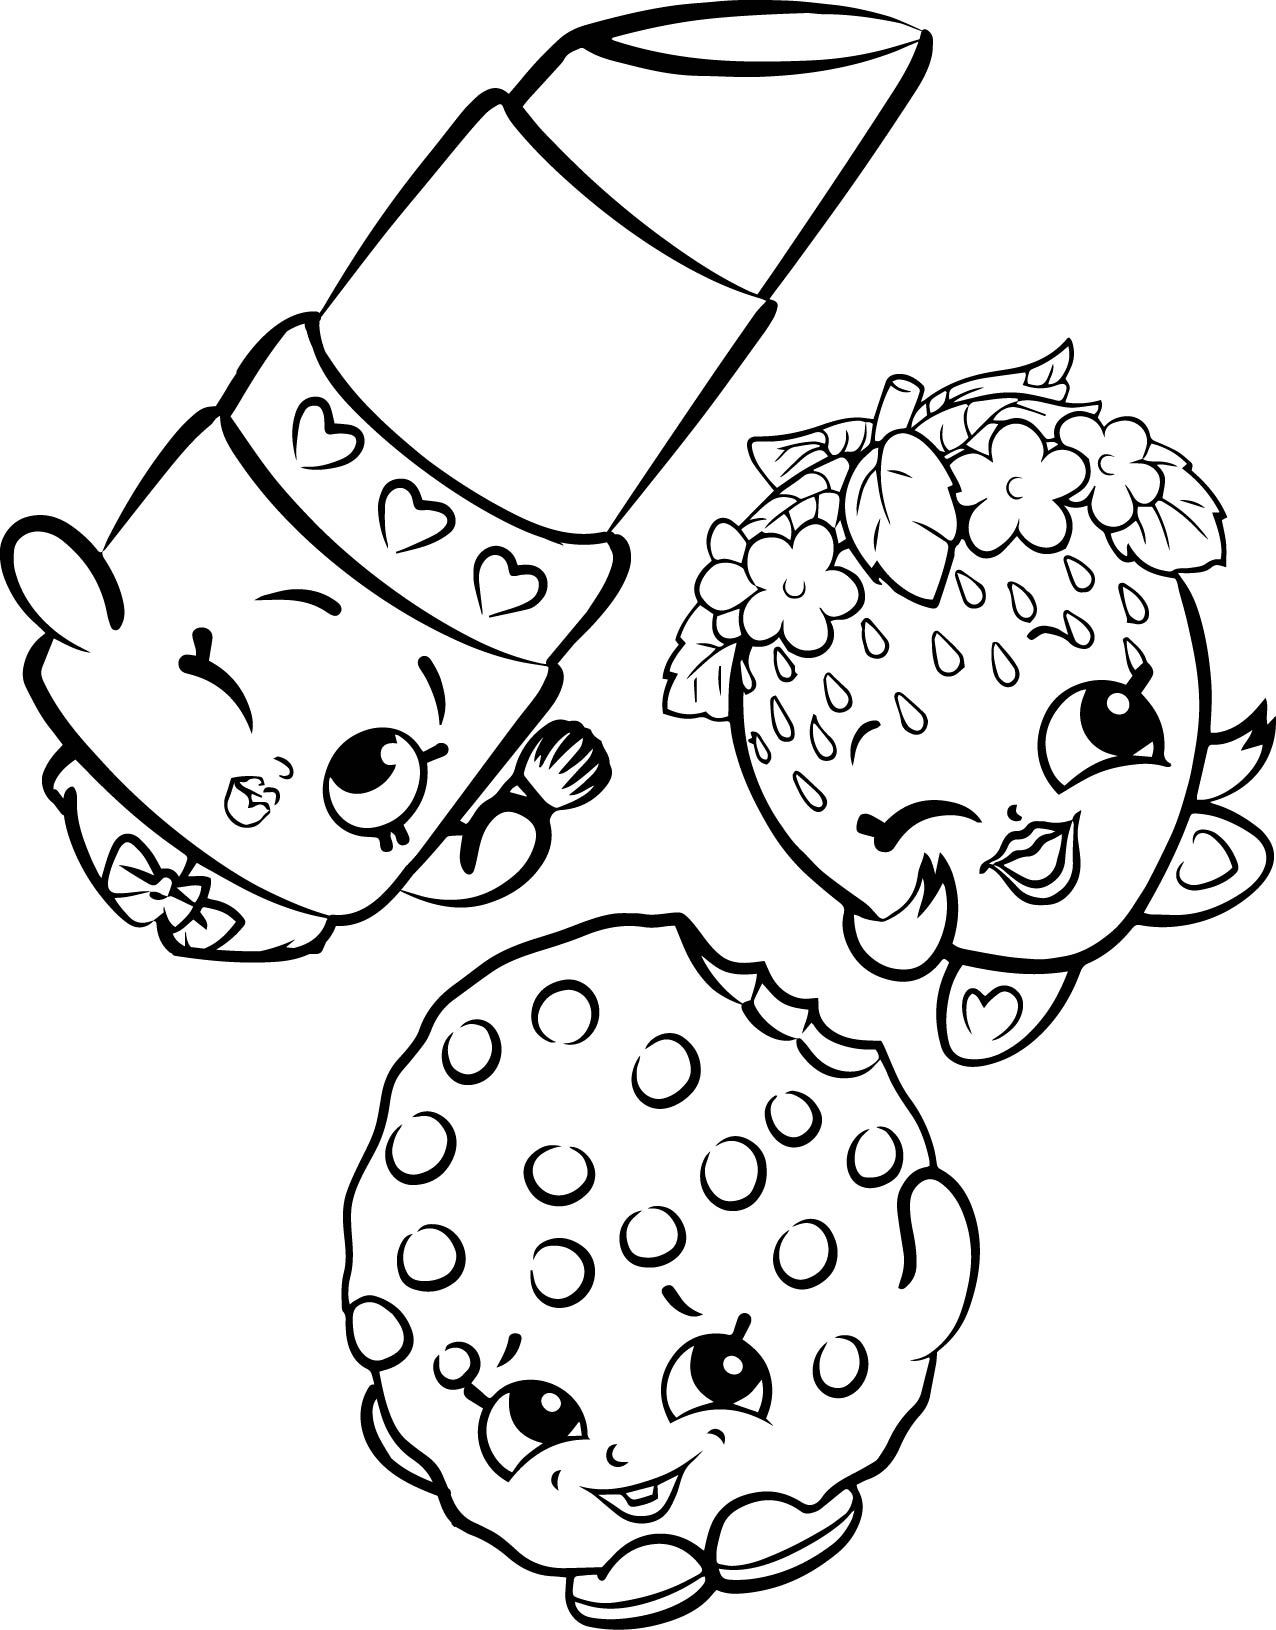 1276x1630 Valentines Shopkins Coloring Pages Download Shopkins Coloring